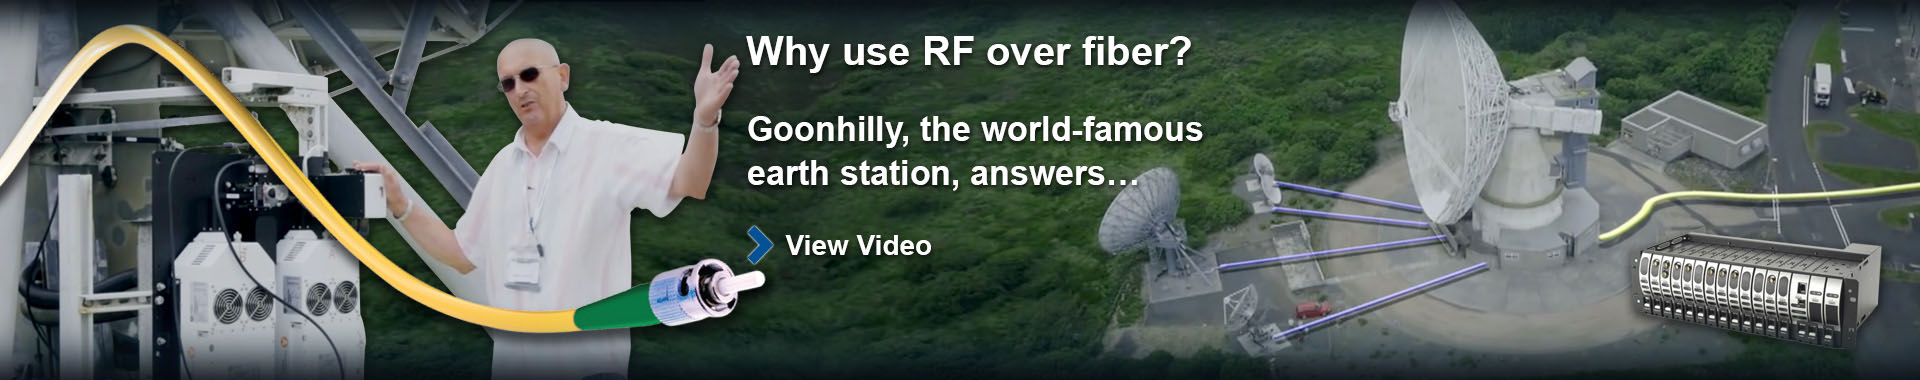 Goonhilly video slider: Why use RF over fiber?